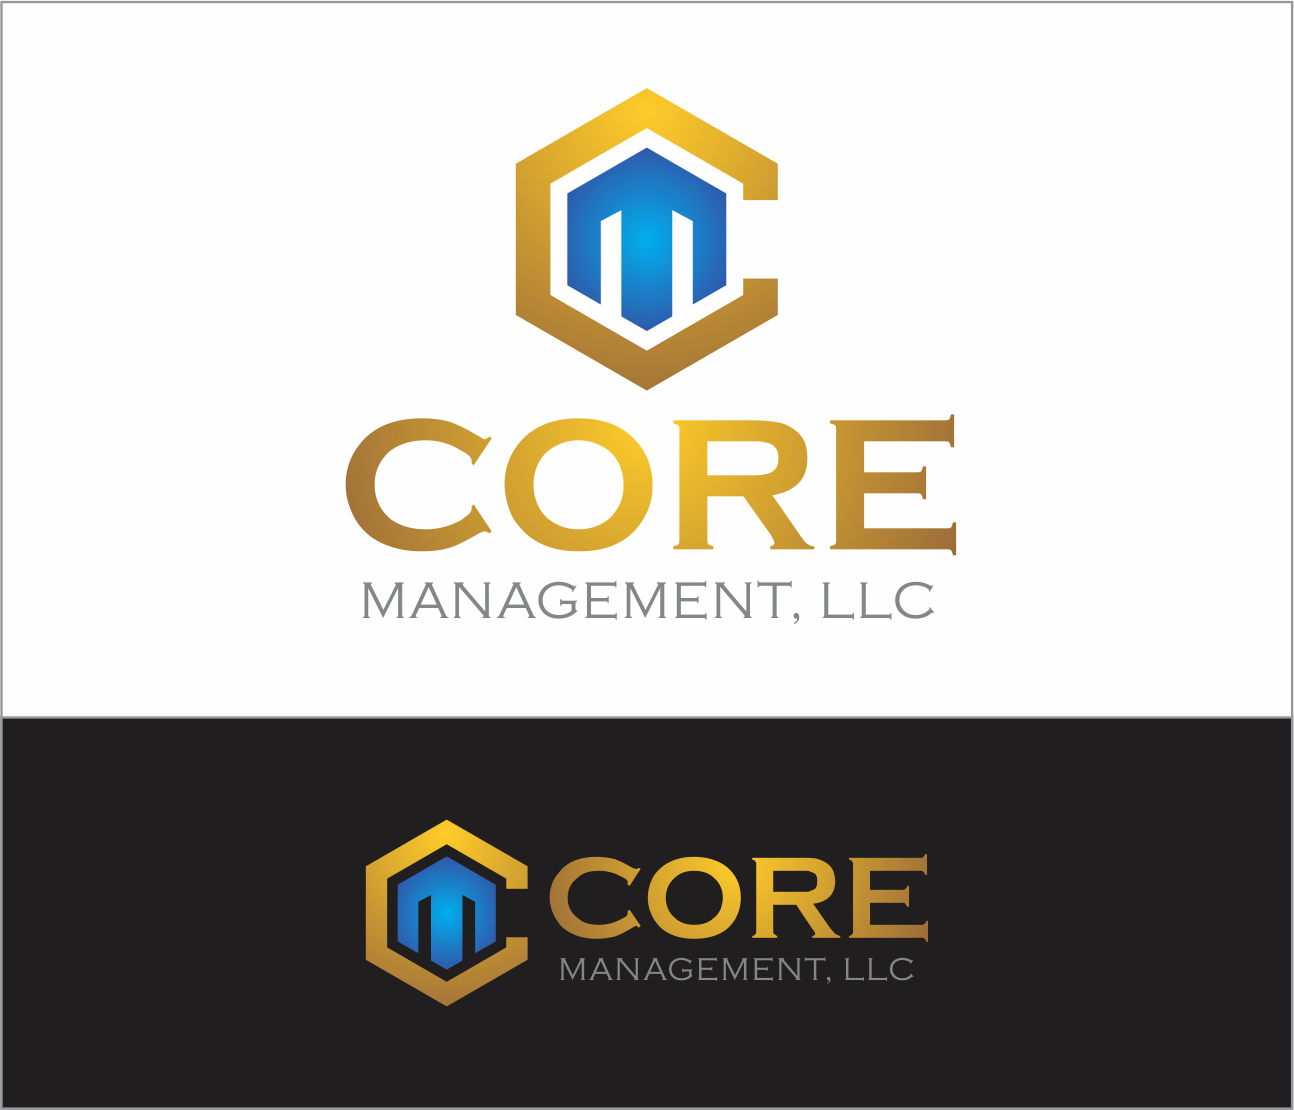 Logo Design by Armada Jamaluddin - Entry No. 165 in the Logo Design Contest Creative Logo Design for CORE Management, LLC.